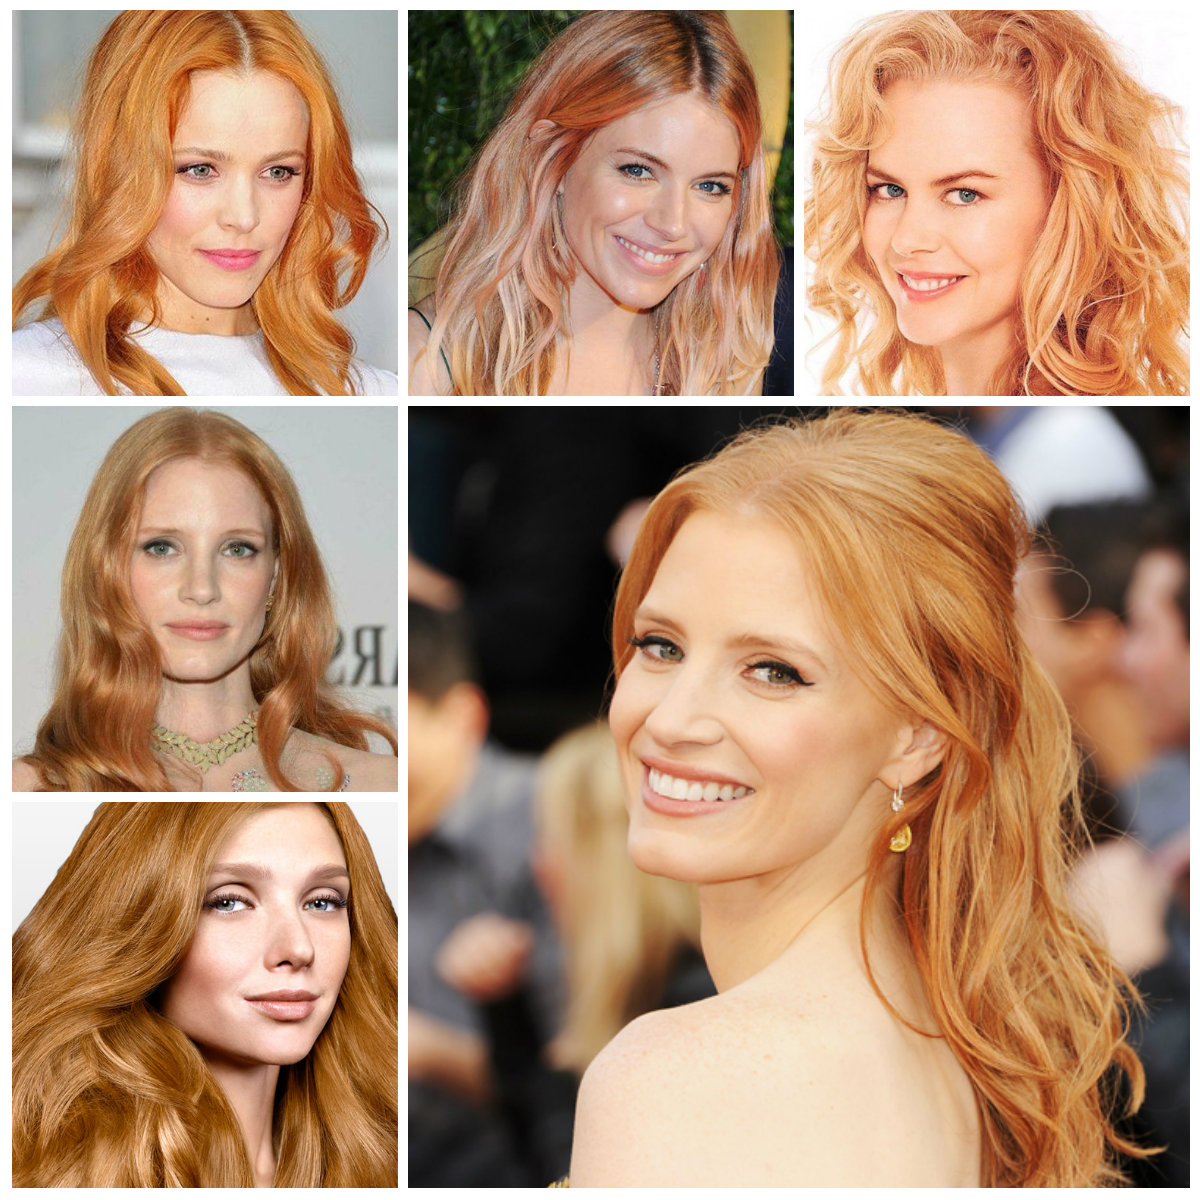 Strawberry Blonde Hair Colors For 2019   Hairstyles For Women 2019 Throughout Strawberry Blonde Short Haircuts (View 14 of 25)